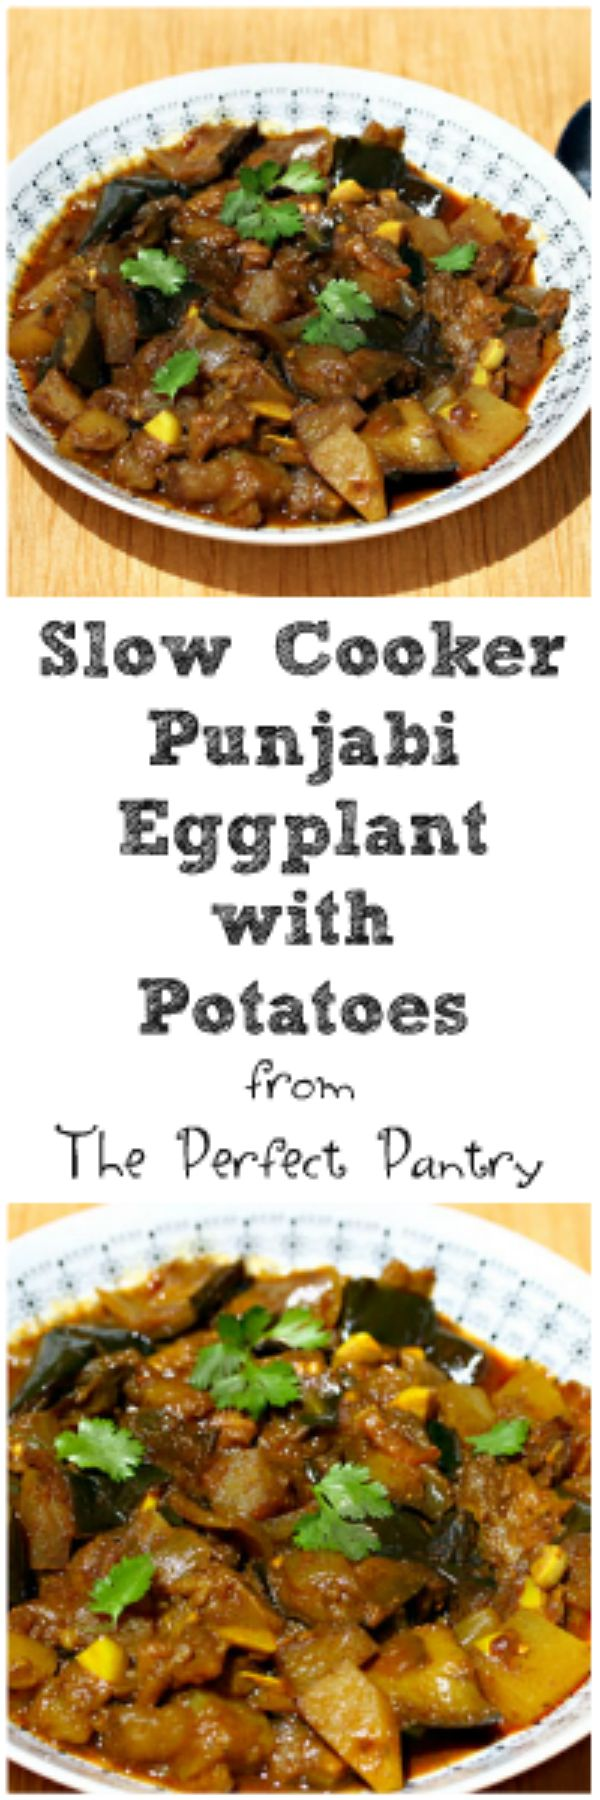 Slow cooker Punjabi eggplant with potatoes, from The Perfect Pantry. Vegan and gluten-free.